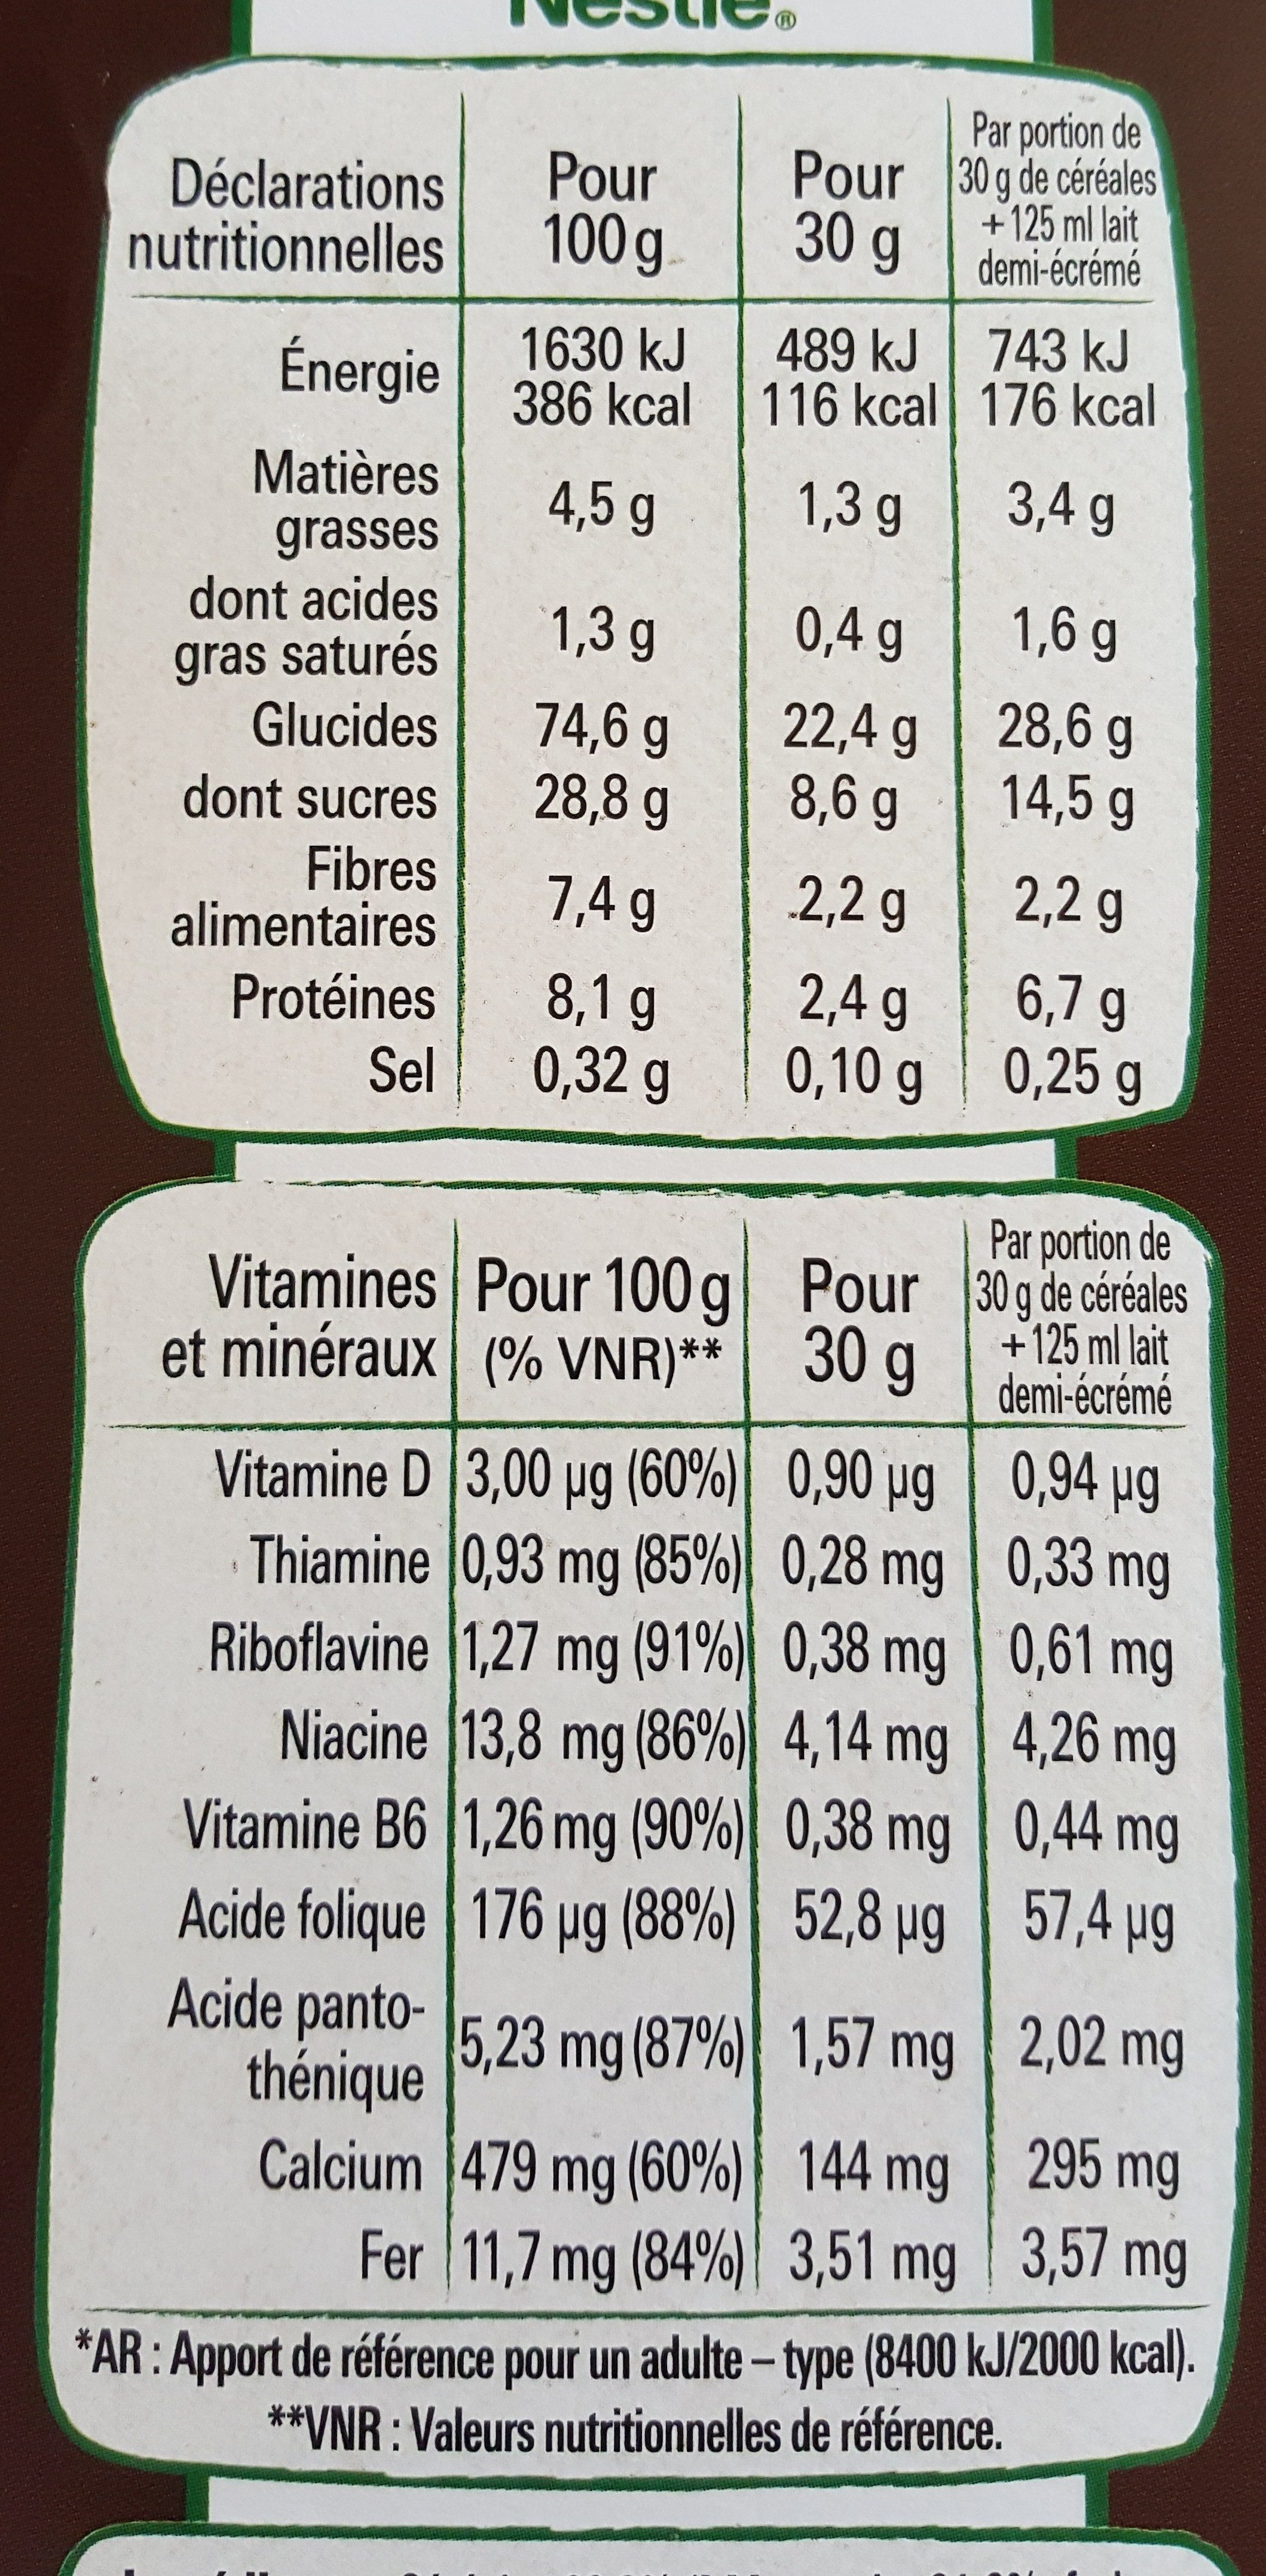 céréale chocapic - Nutrition facts